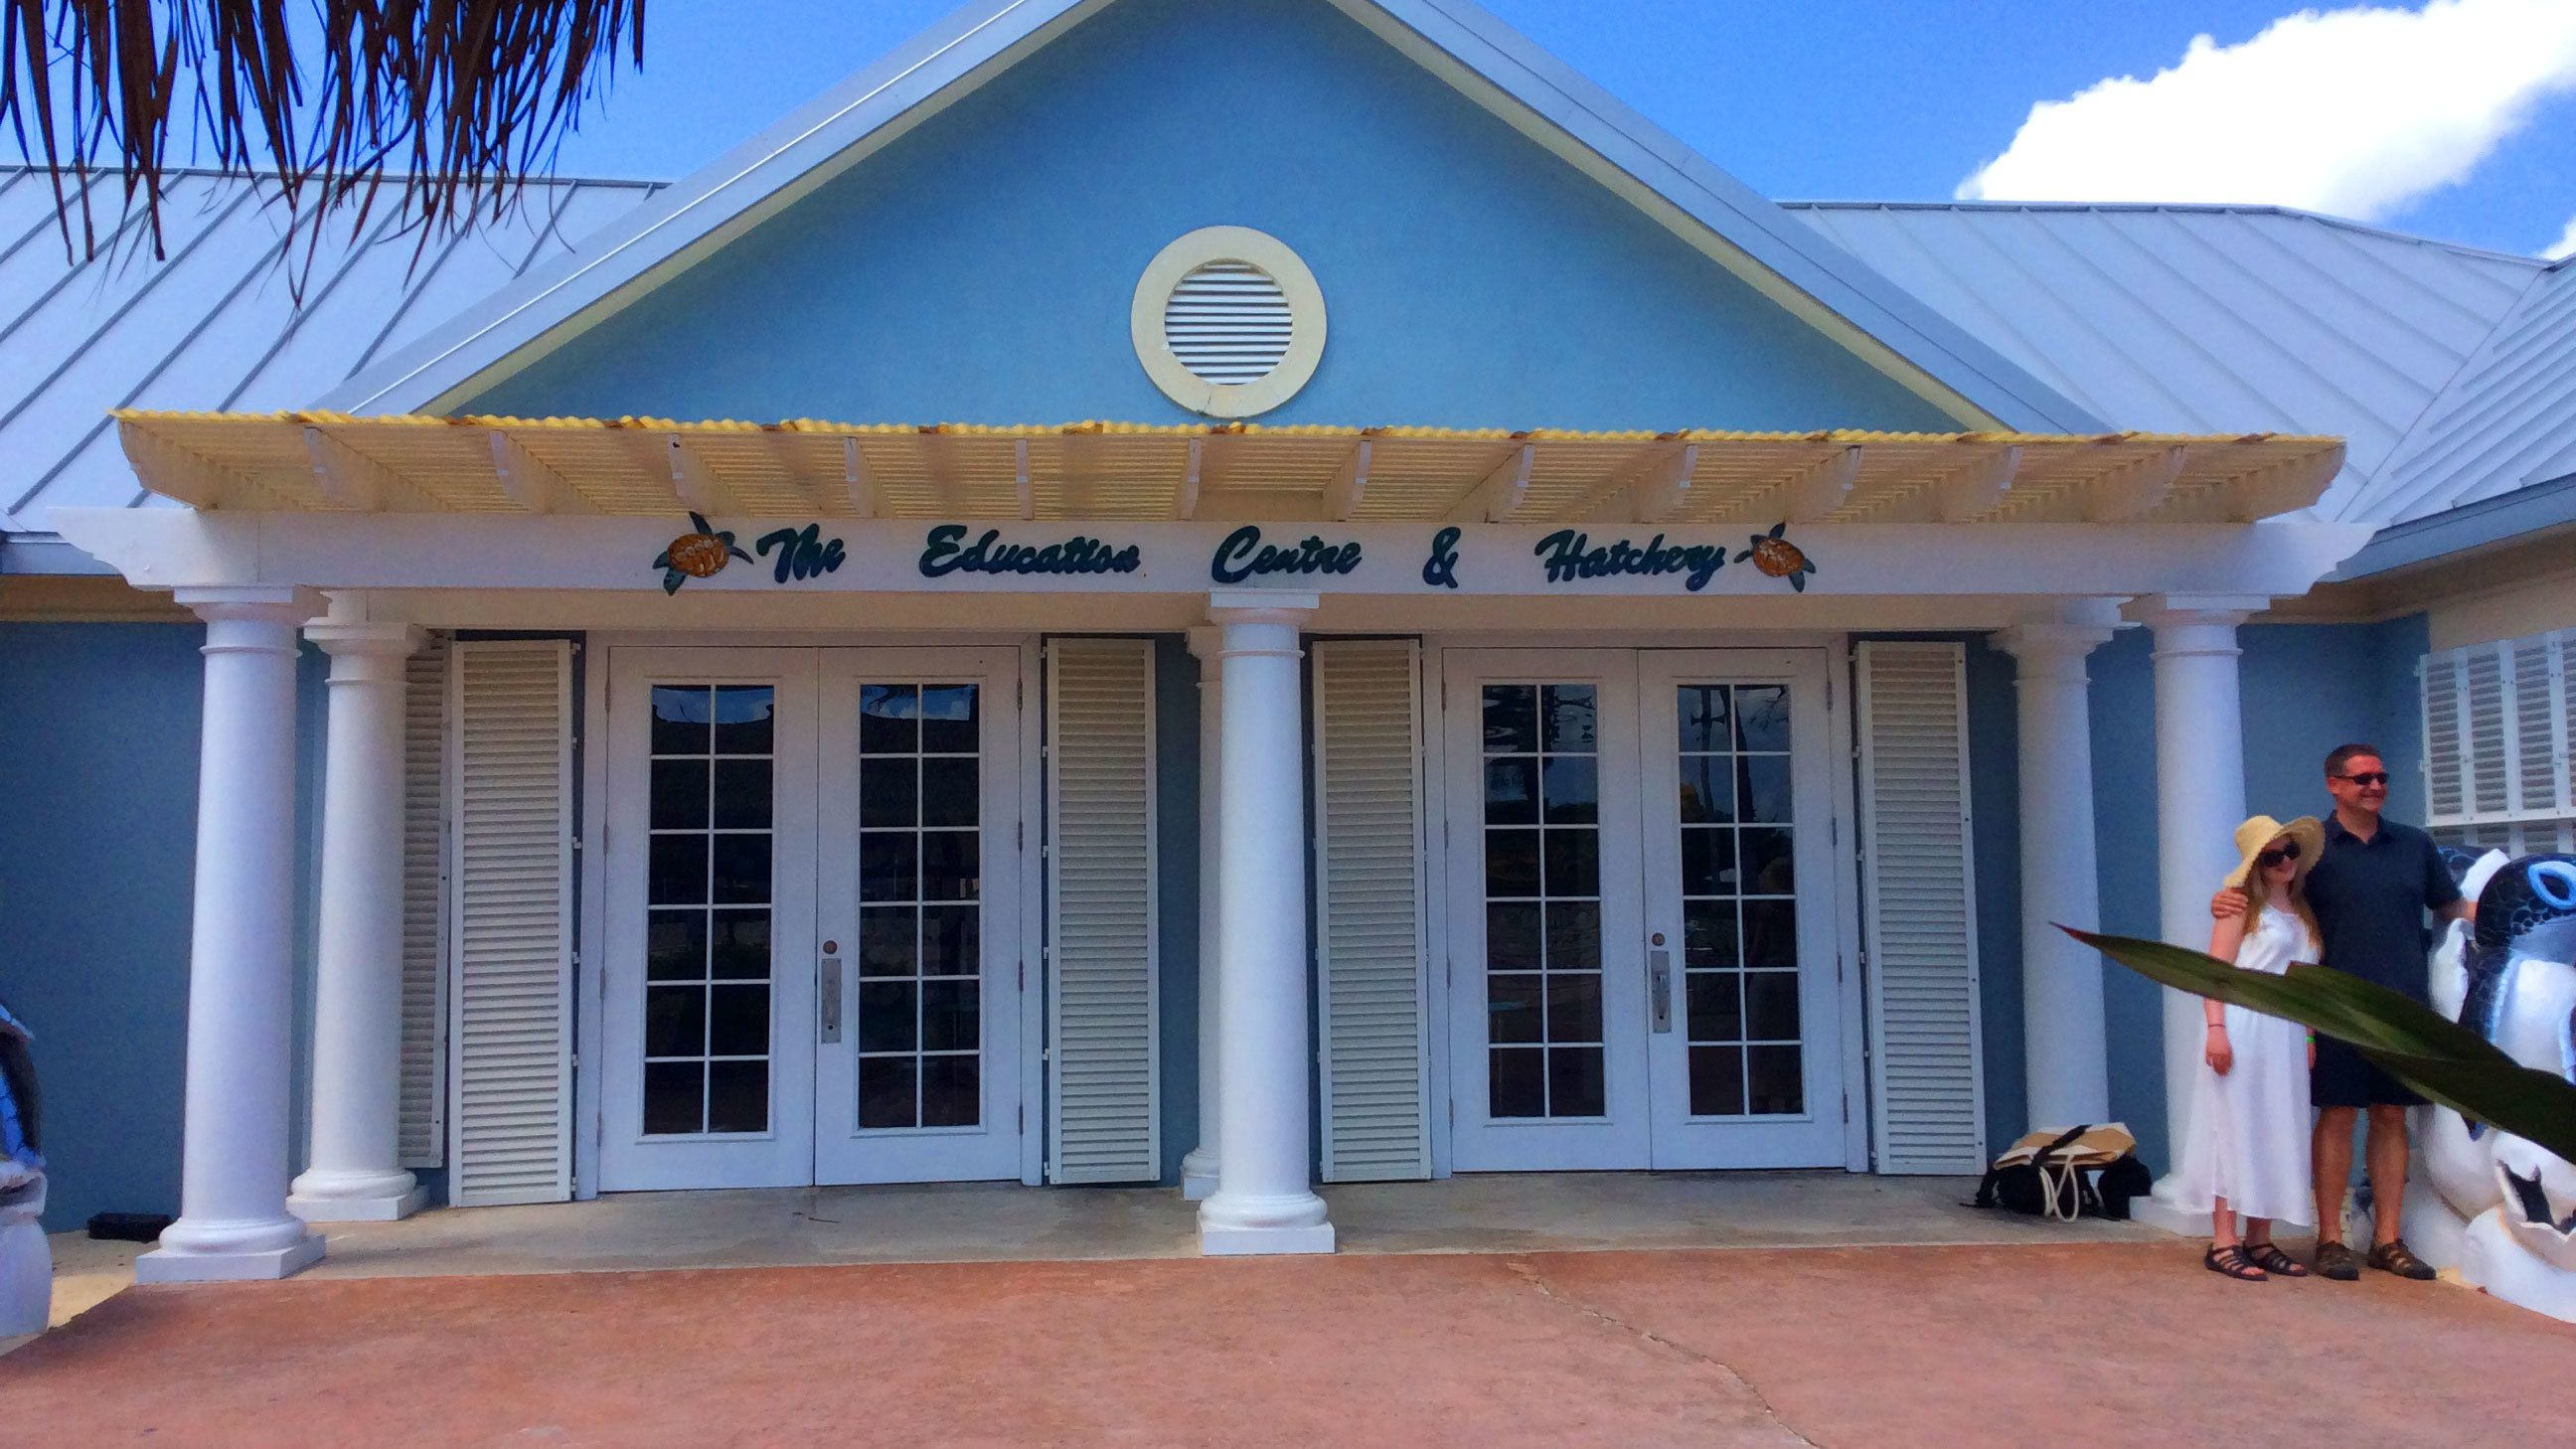 Education Center and Hatchery at the Cayman Turtle Center